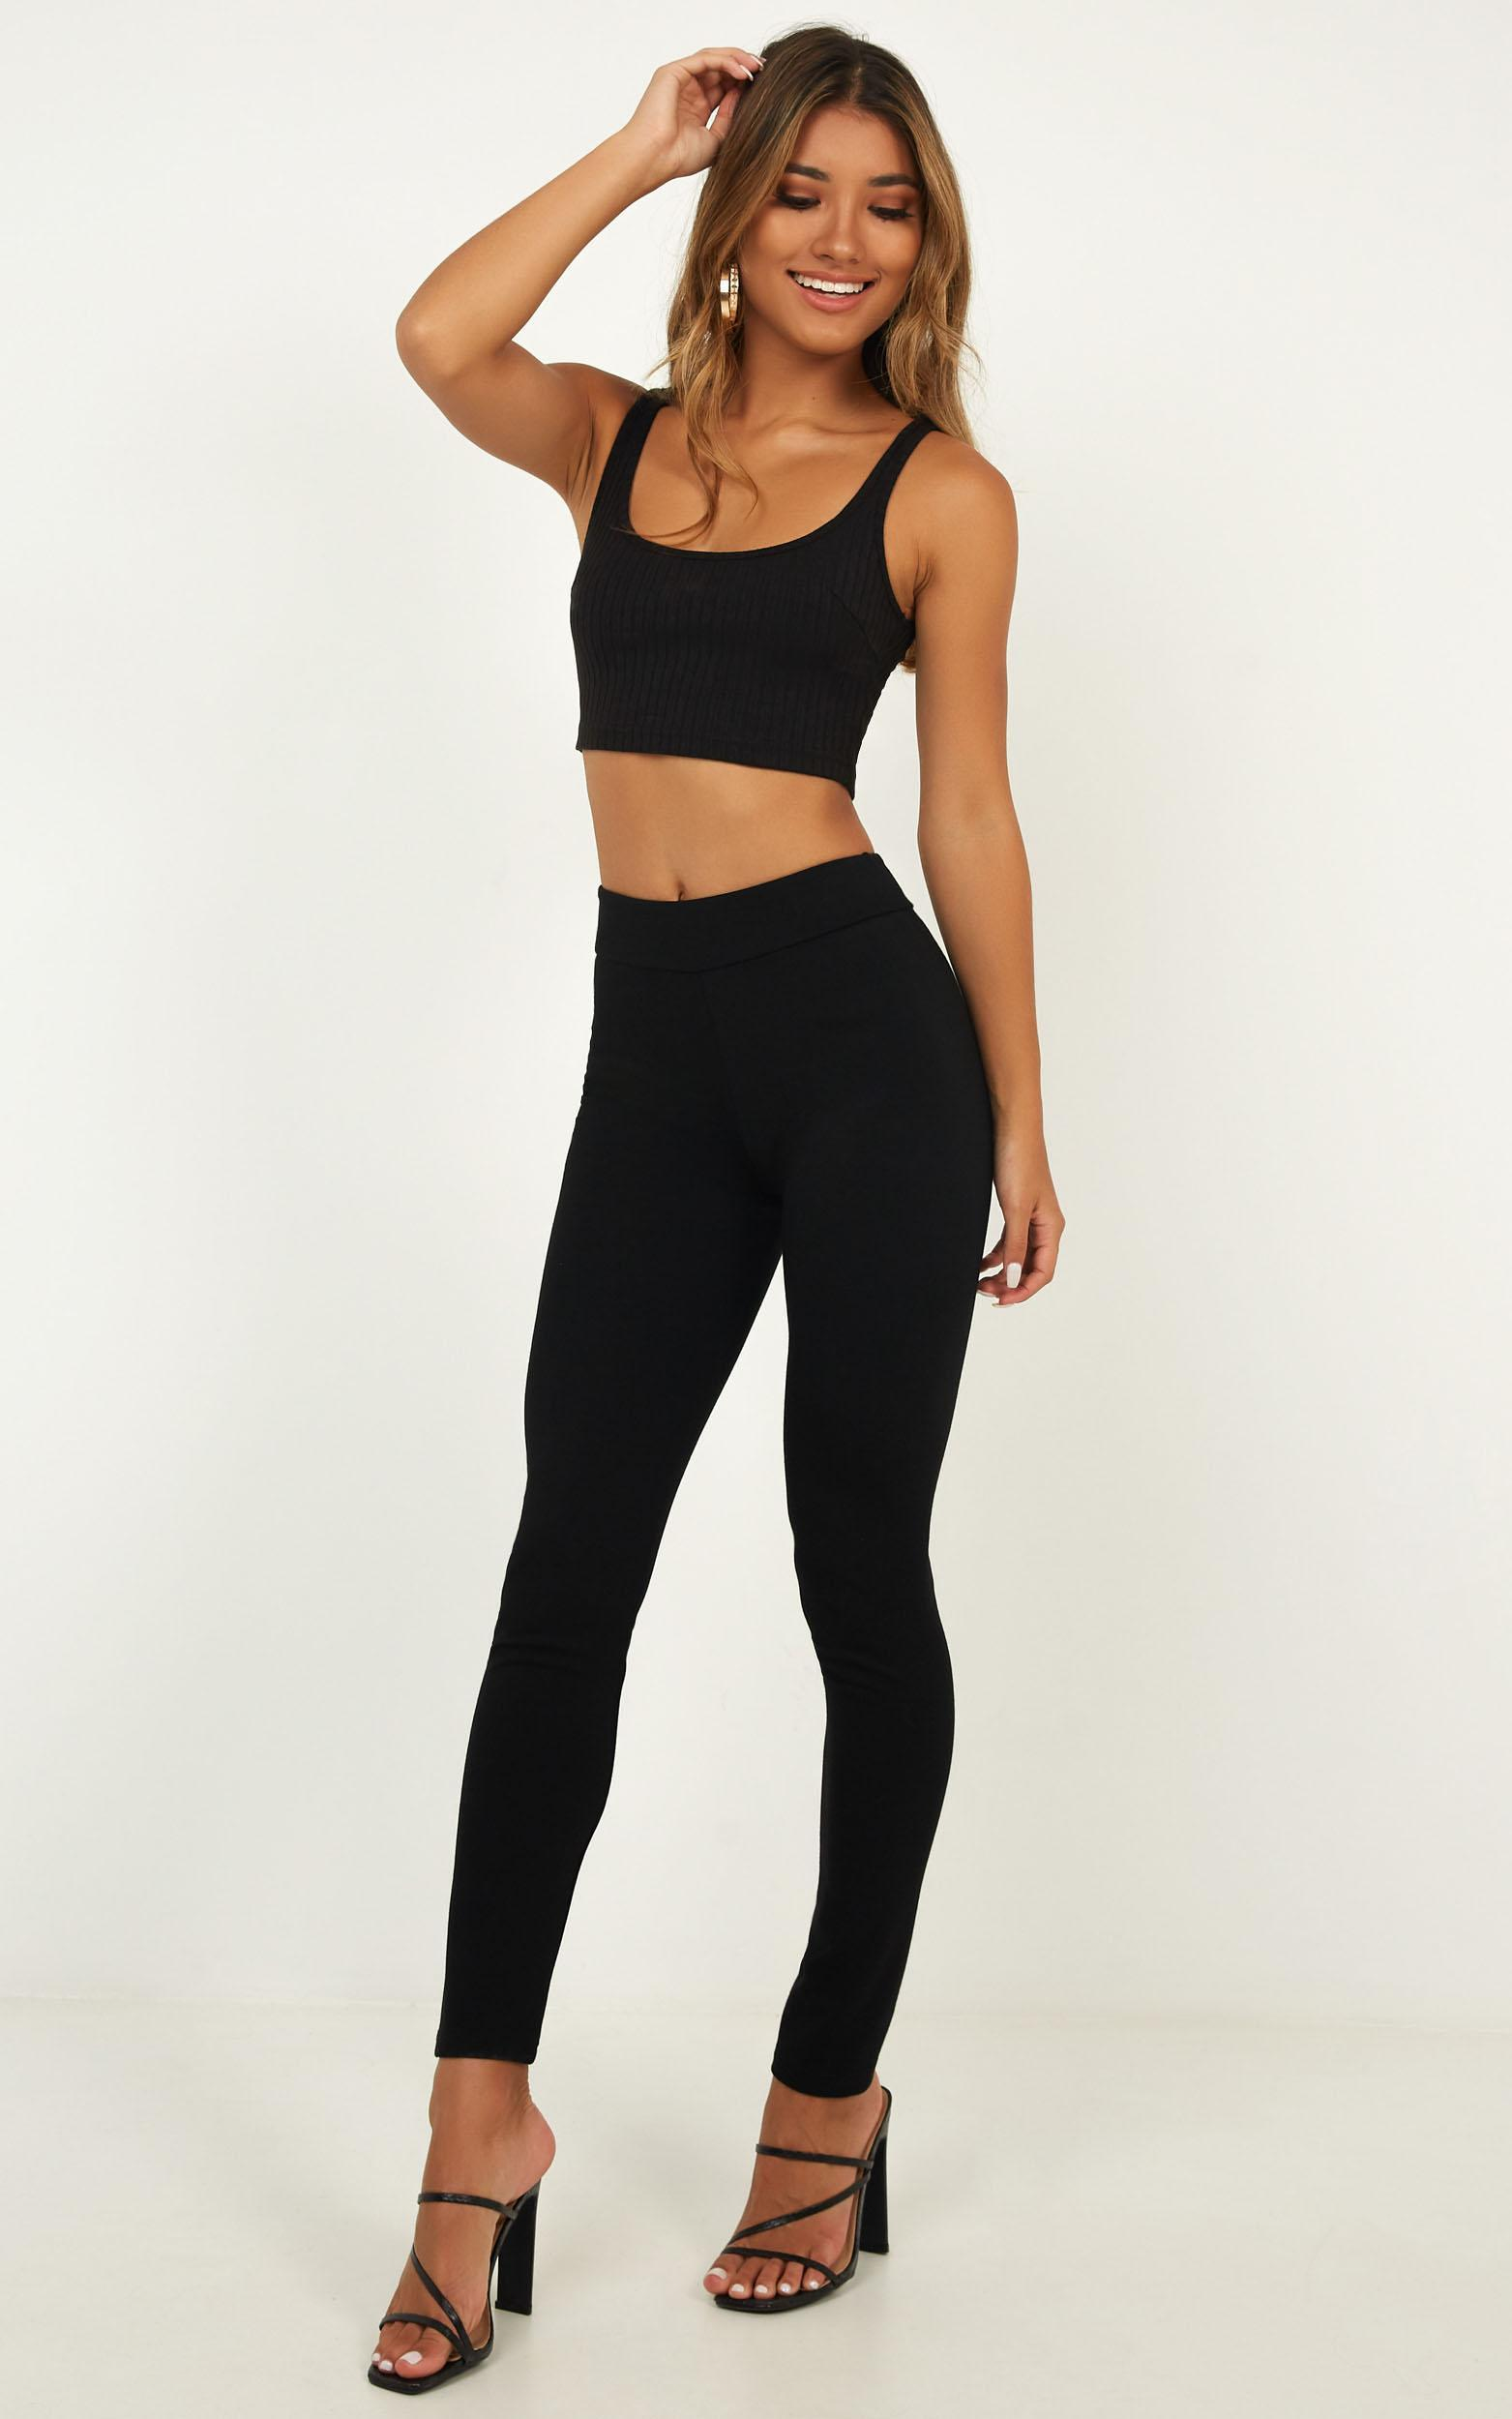 Burning Up Crop Top in black - 16 (XXL), Black, hi-res image number null